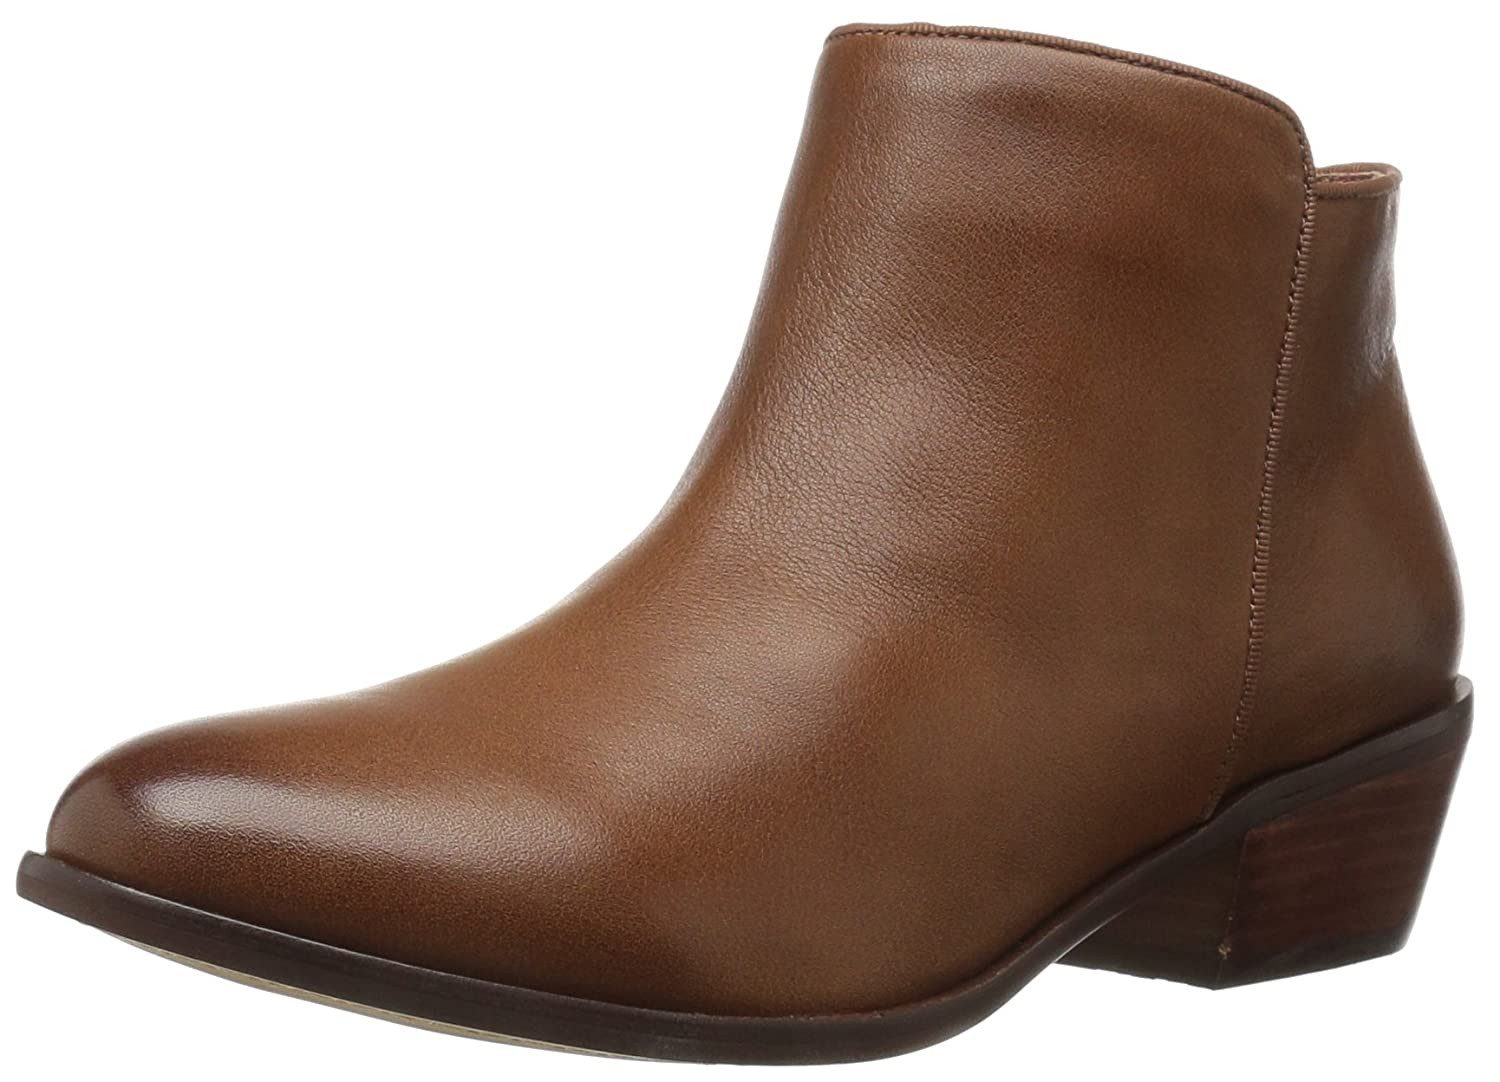 206 Collective Women's Magnolia Low Heel Ankle Bootie B01N7YX3L4 11 B(M) US|Cognac Leather